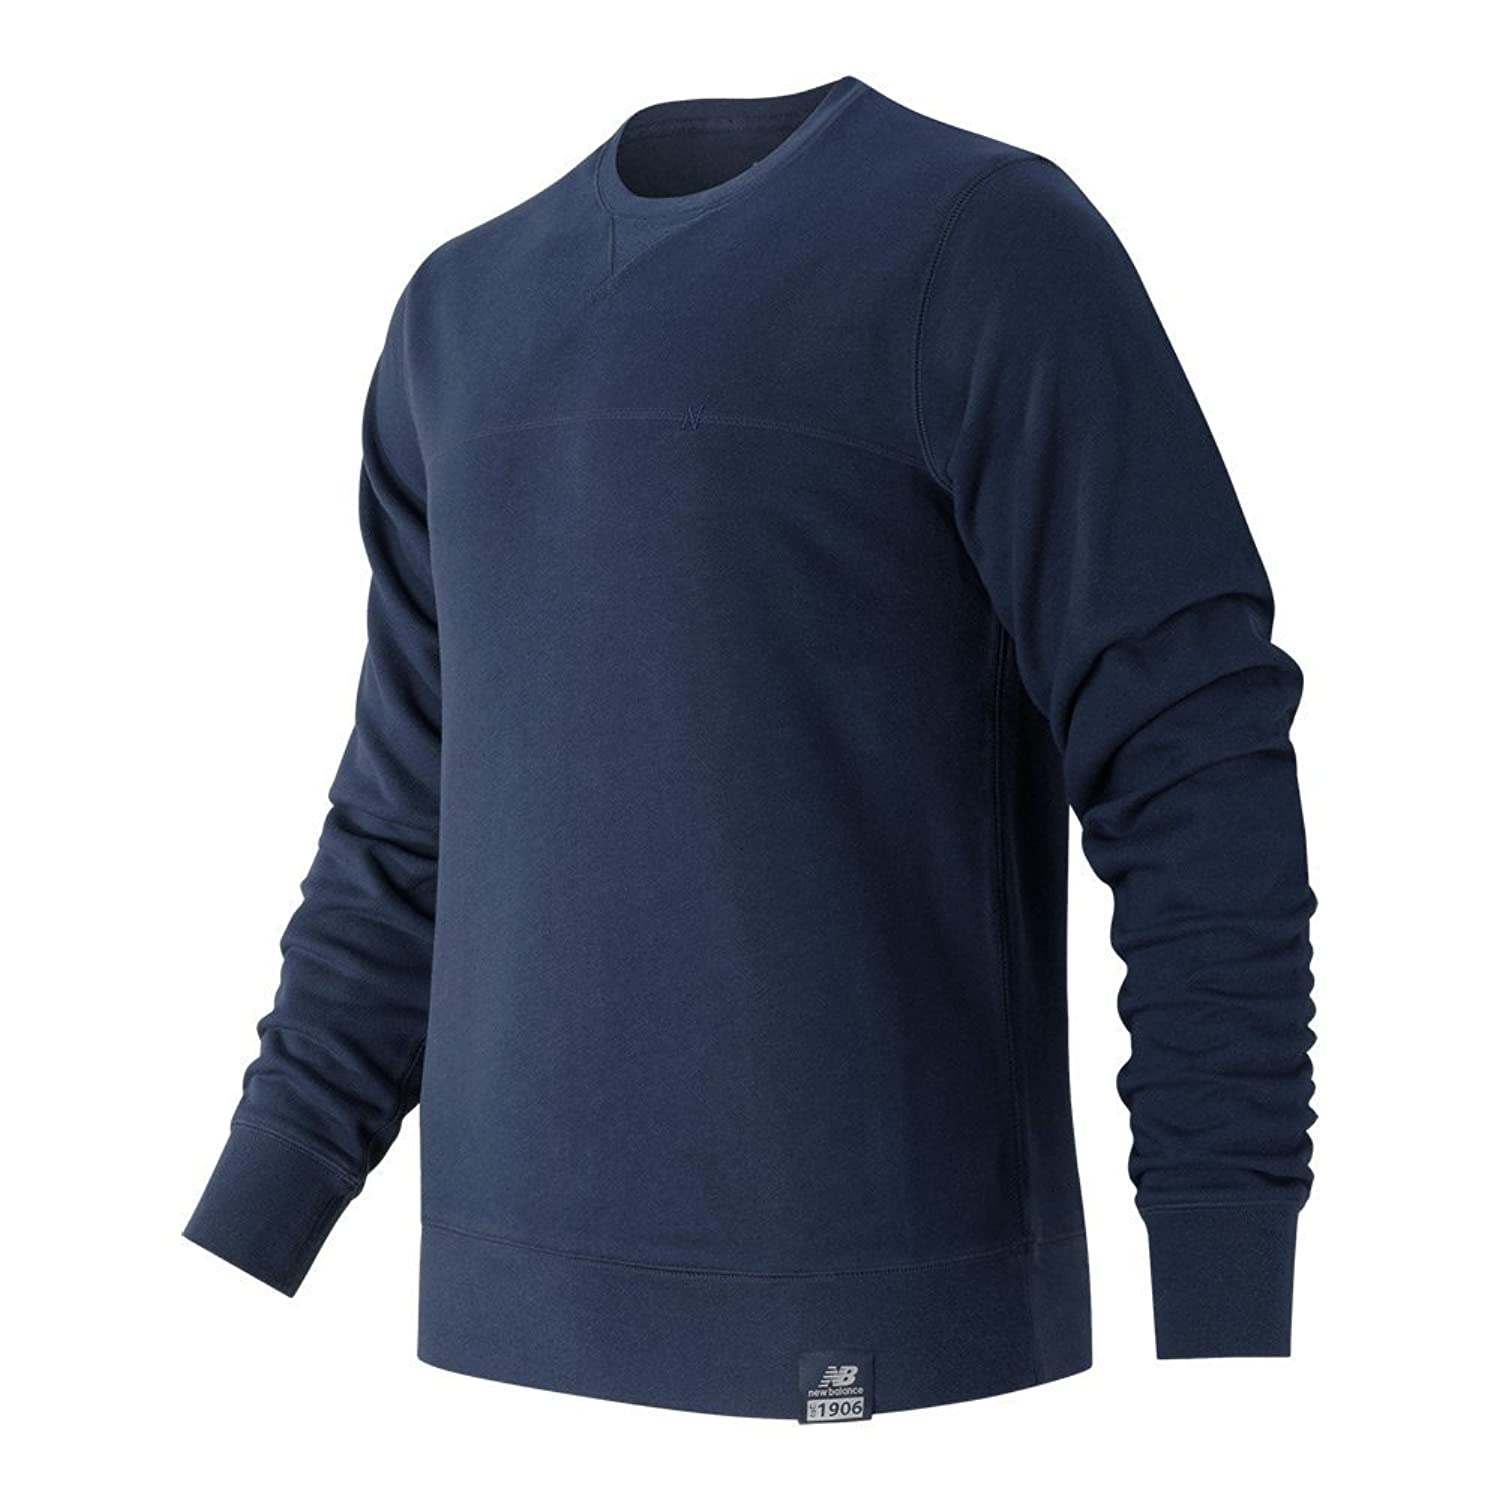 e792790c51793 New Balance Men's Essentials Plus Crew Neck Sweatshirt: Amazon.co.uk ...